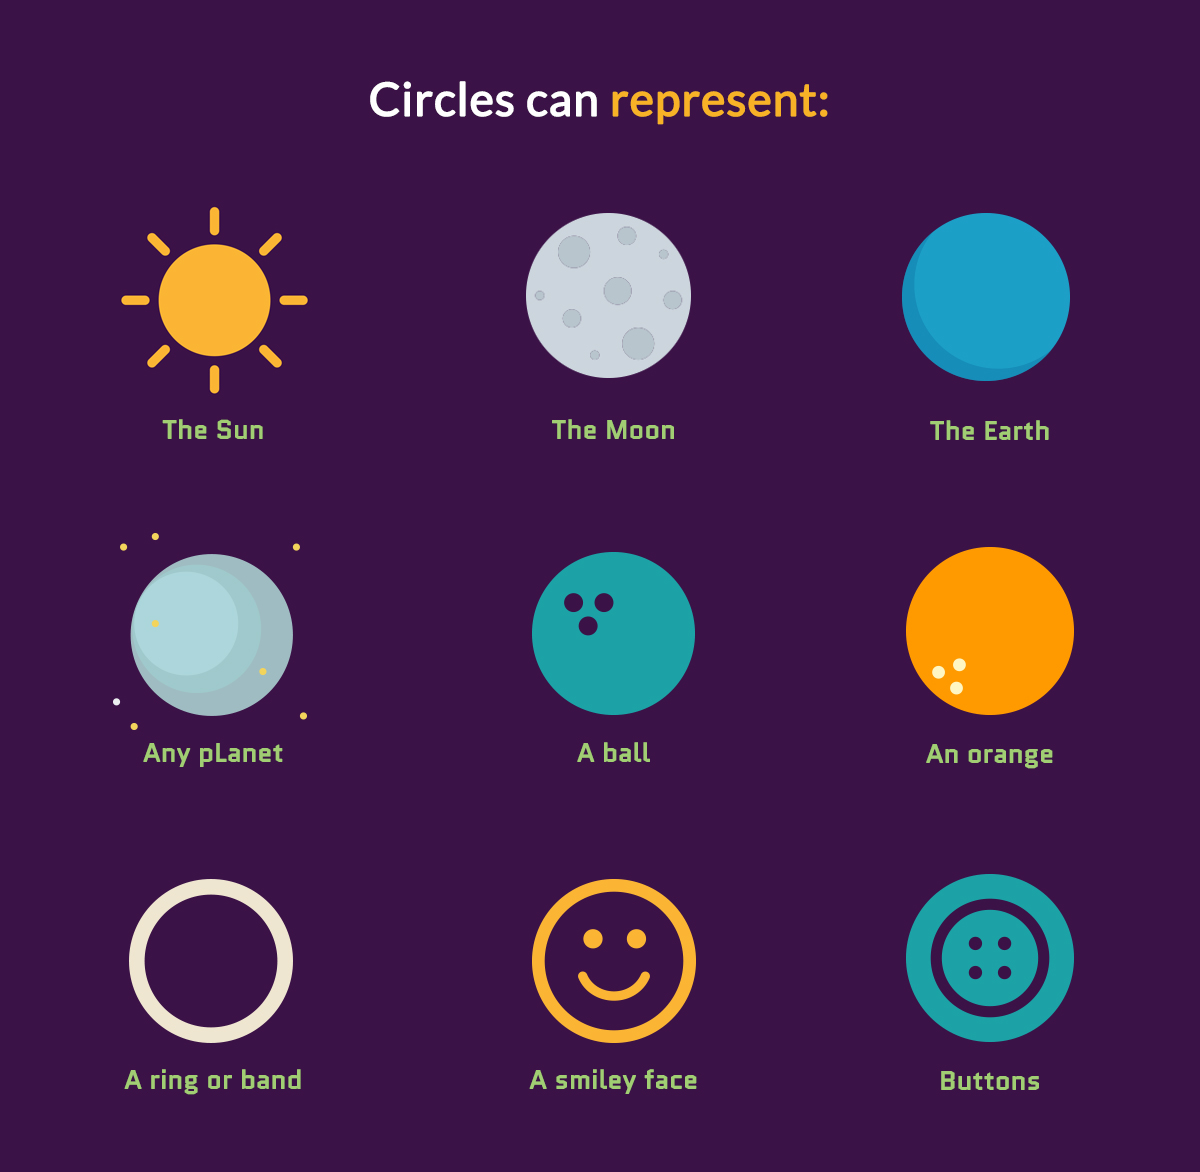 Circles-can-represent How-to-Creatively-Use-Shapesto-Make-Your-Designs-Stand-Out-geometric meanings